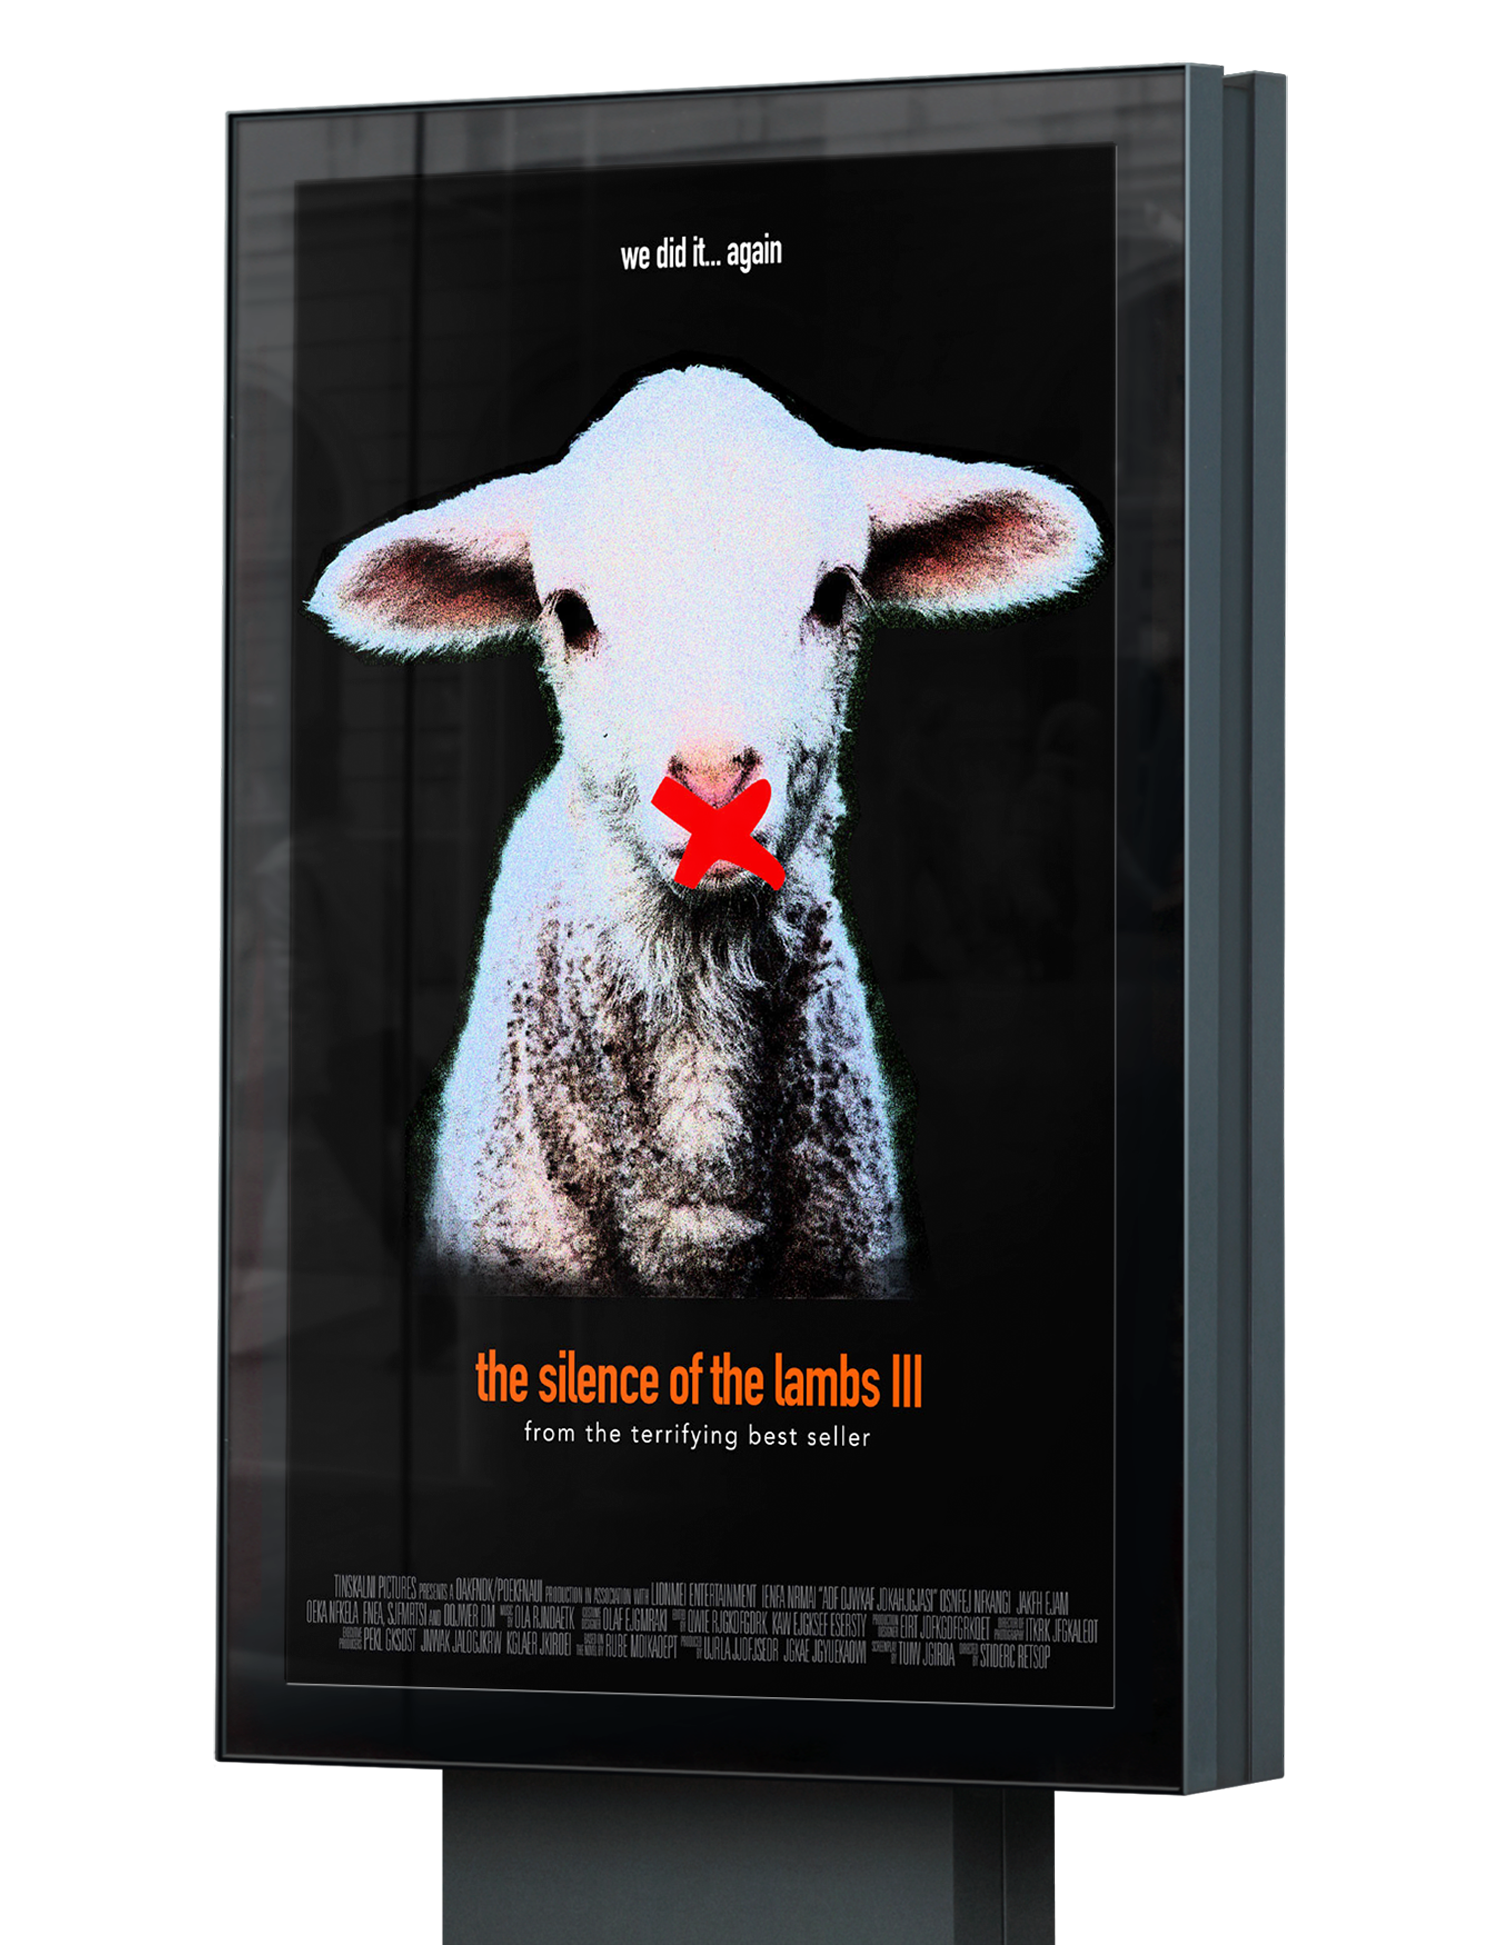 MoviePoster2.png